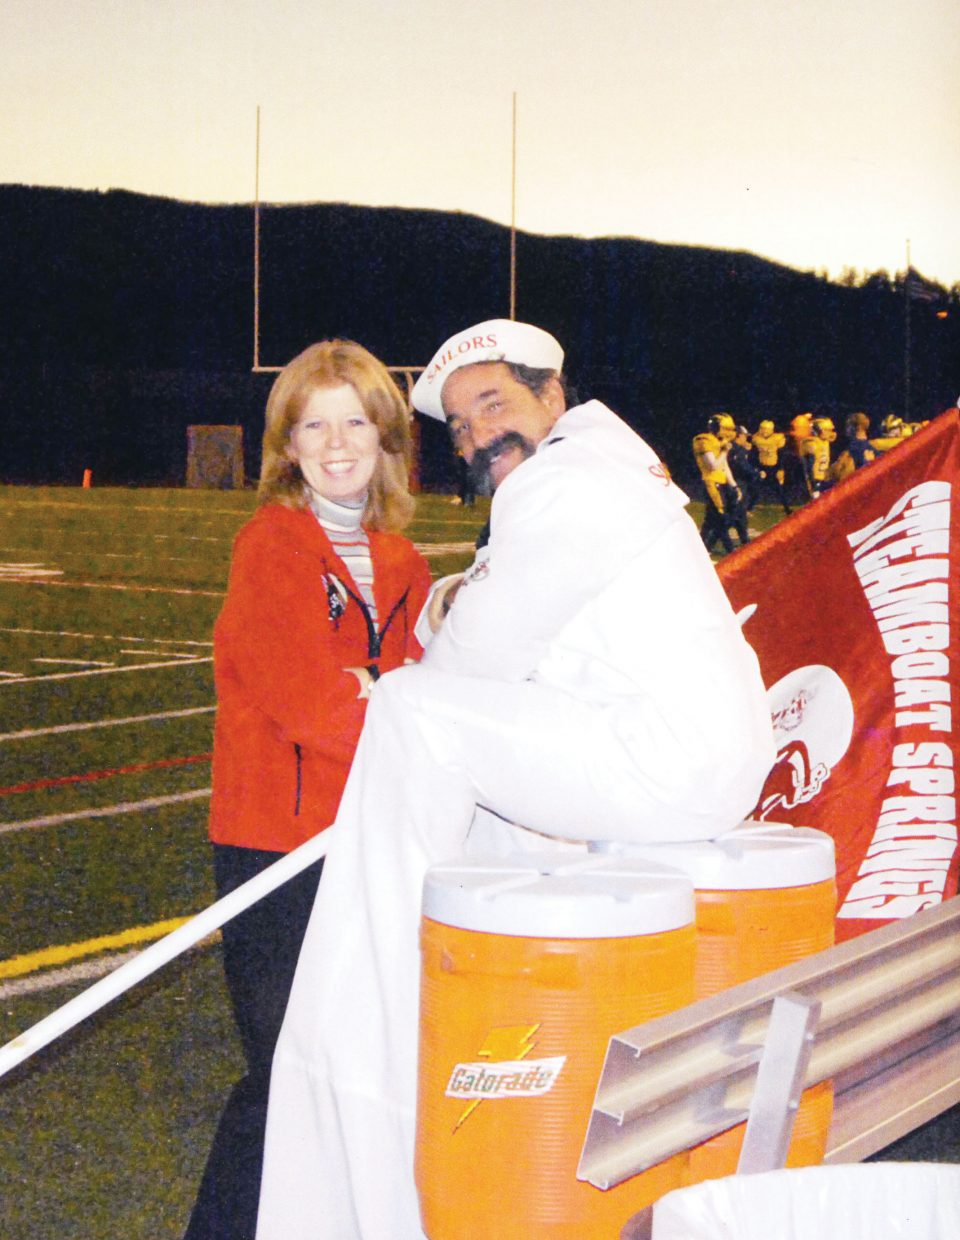 Kevin, dressed as Salty the Sailor, and Kathy Nerney pose for a photo at a Sailors football game.